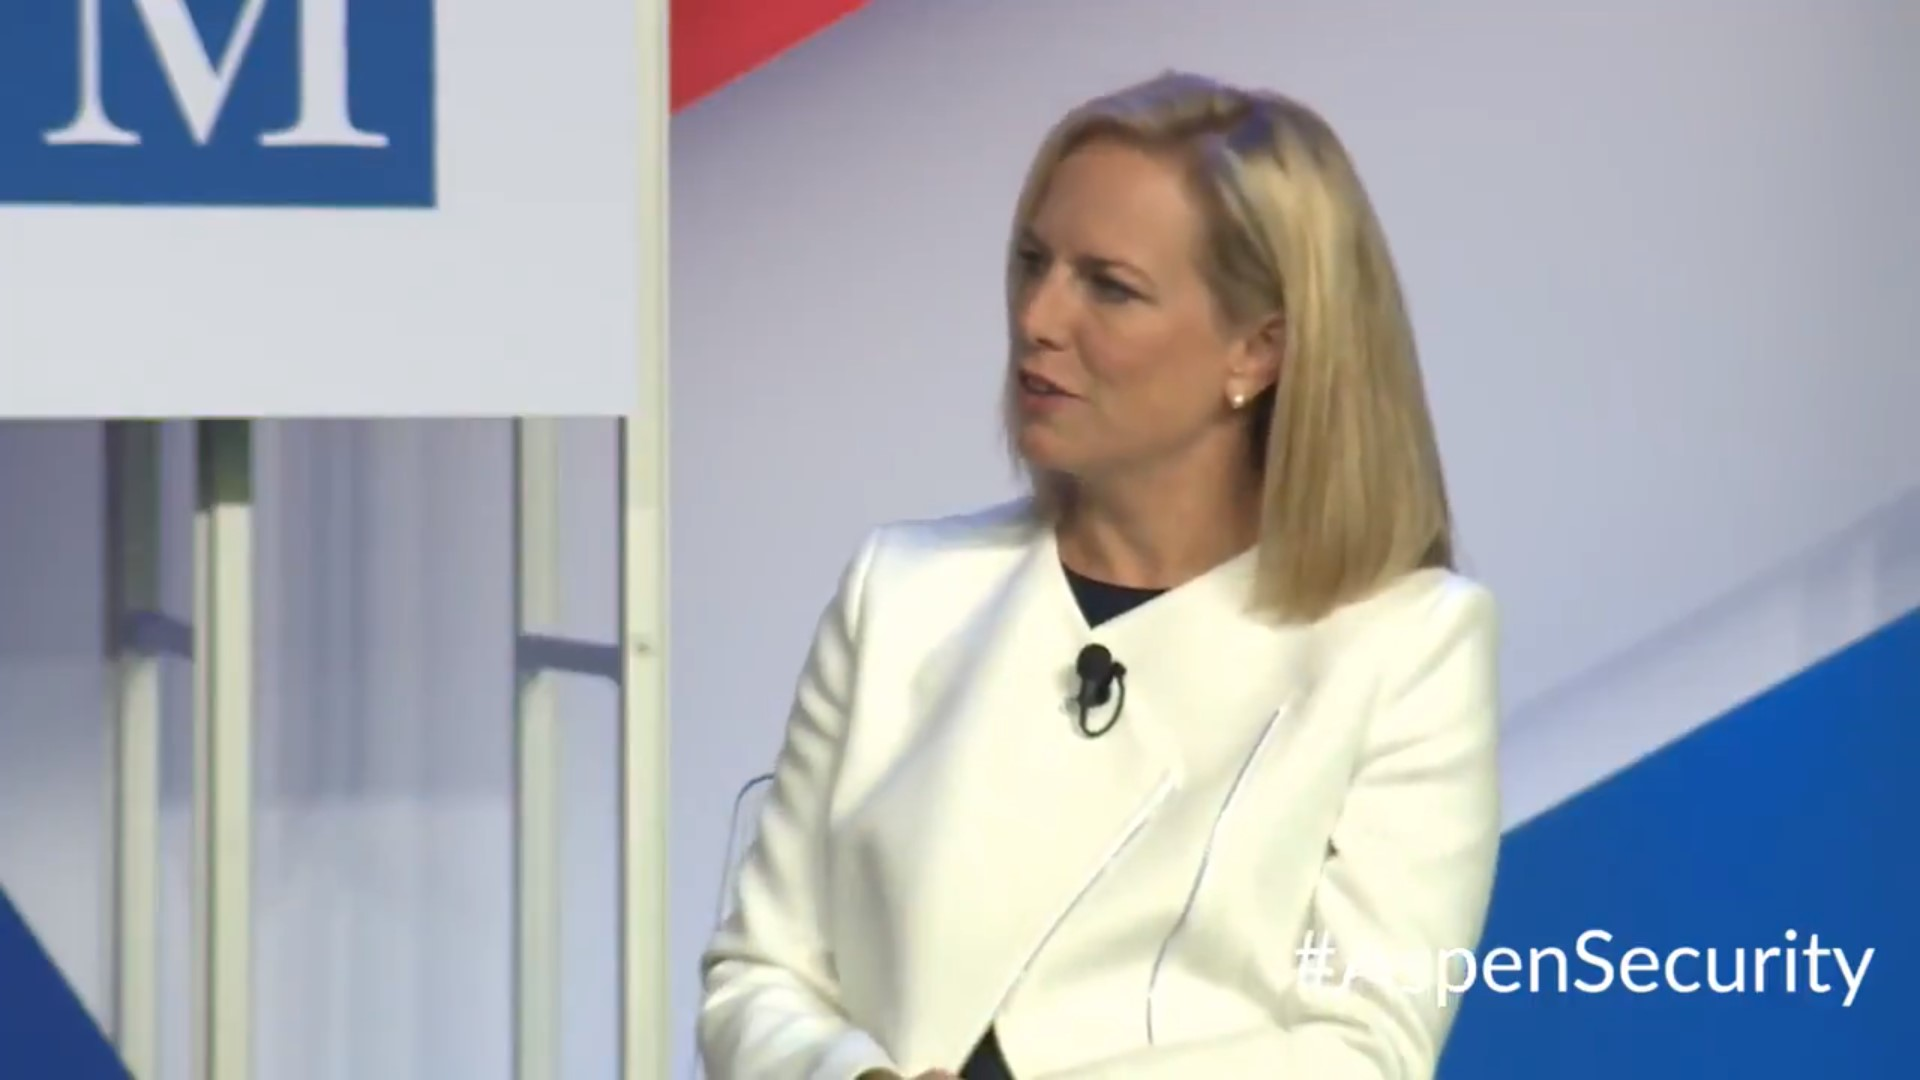 WATCH: Kirstjen Nielsen Doubles Down On Trump's 'Both Sides' Charlottesville Response